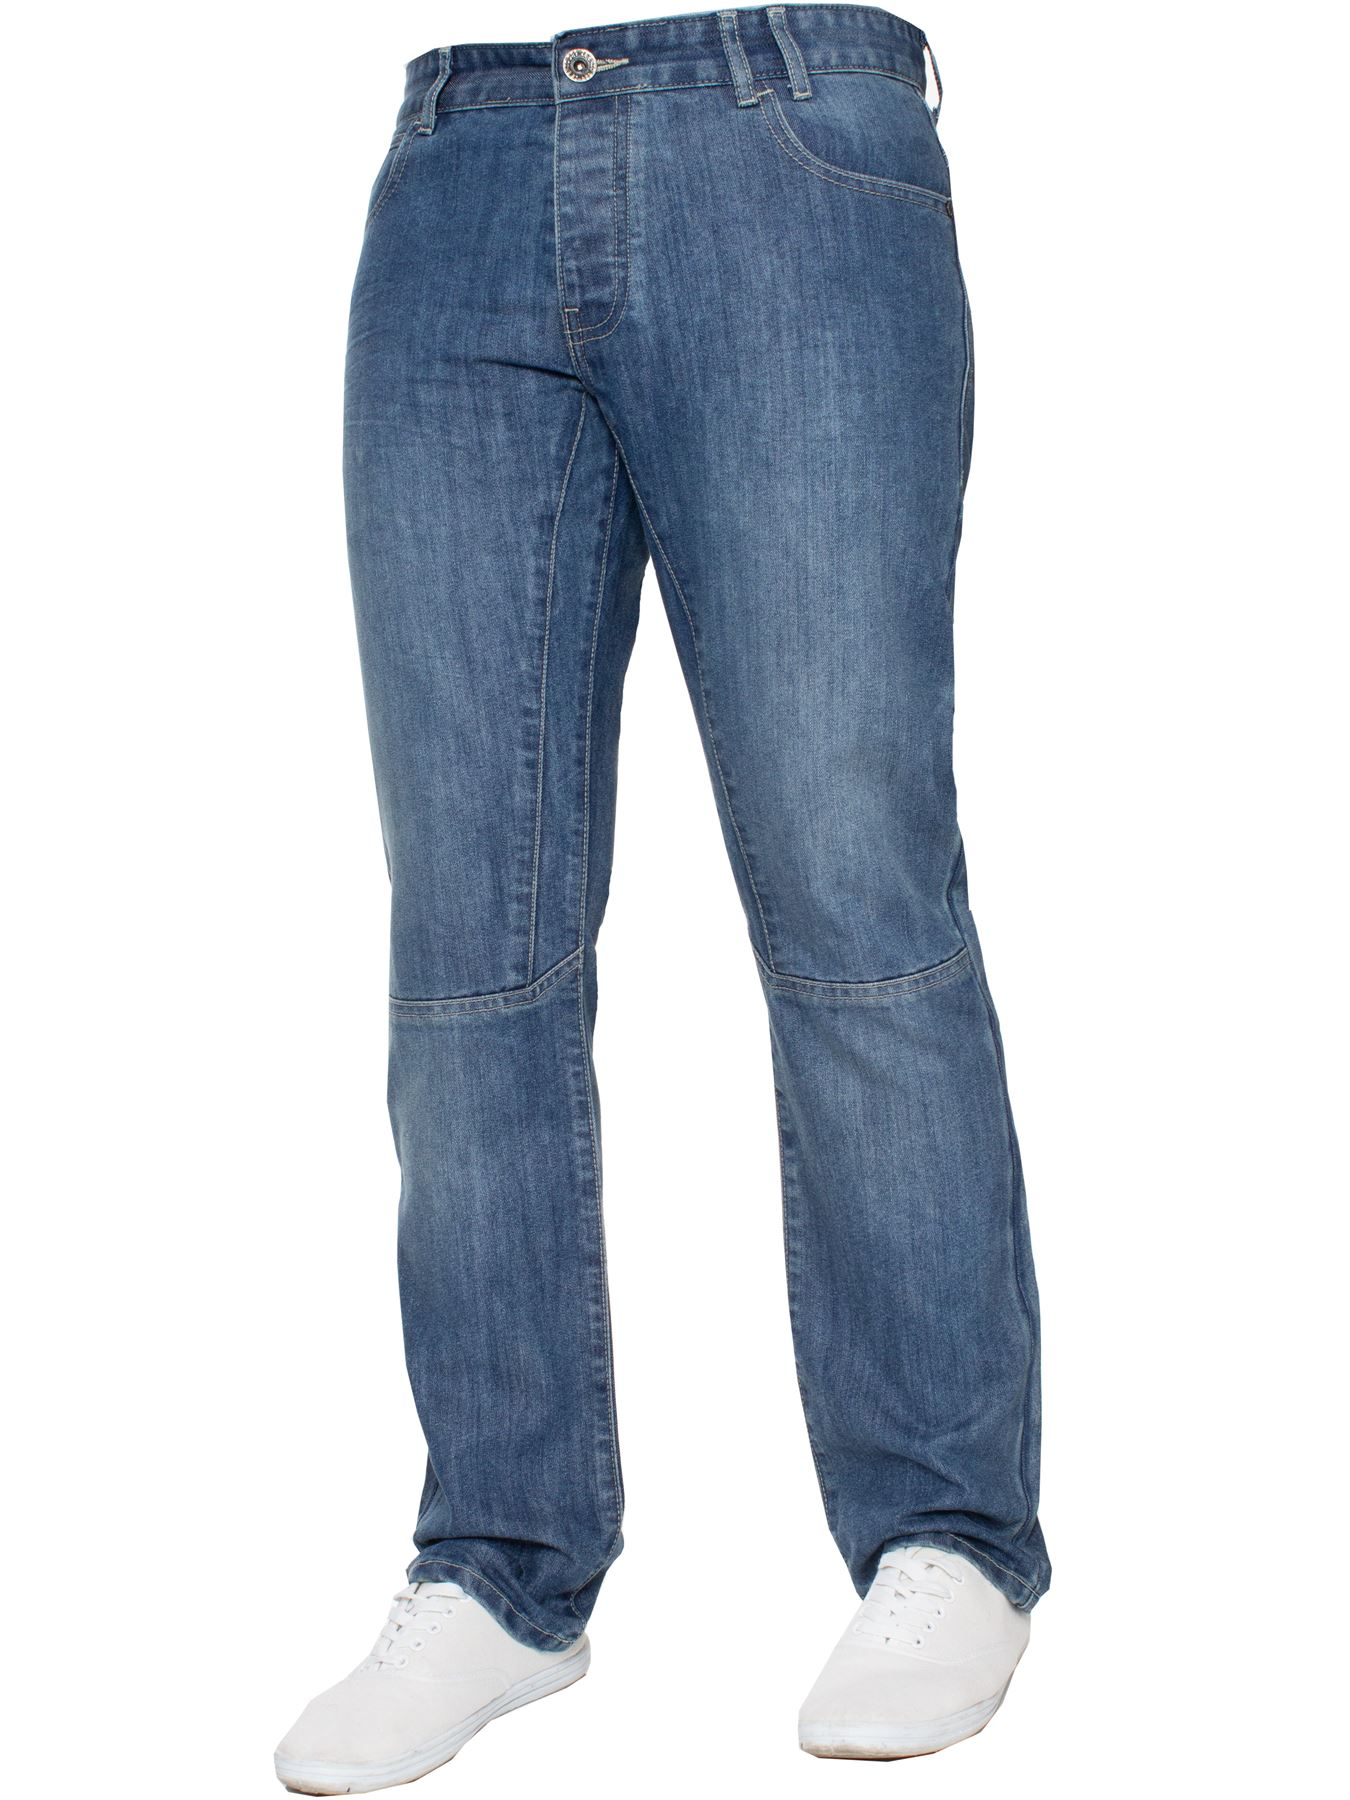 Enzo-Mens-Straight-Jeans-Regular-Leg-Designer-Work-Denim-Pants-All-Waists-Sizes thumbnail 23